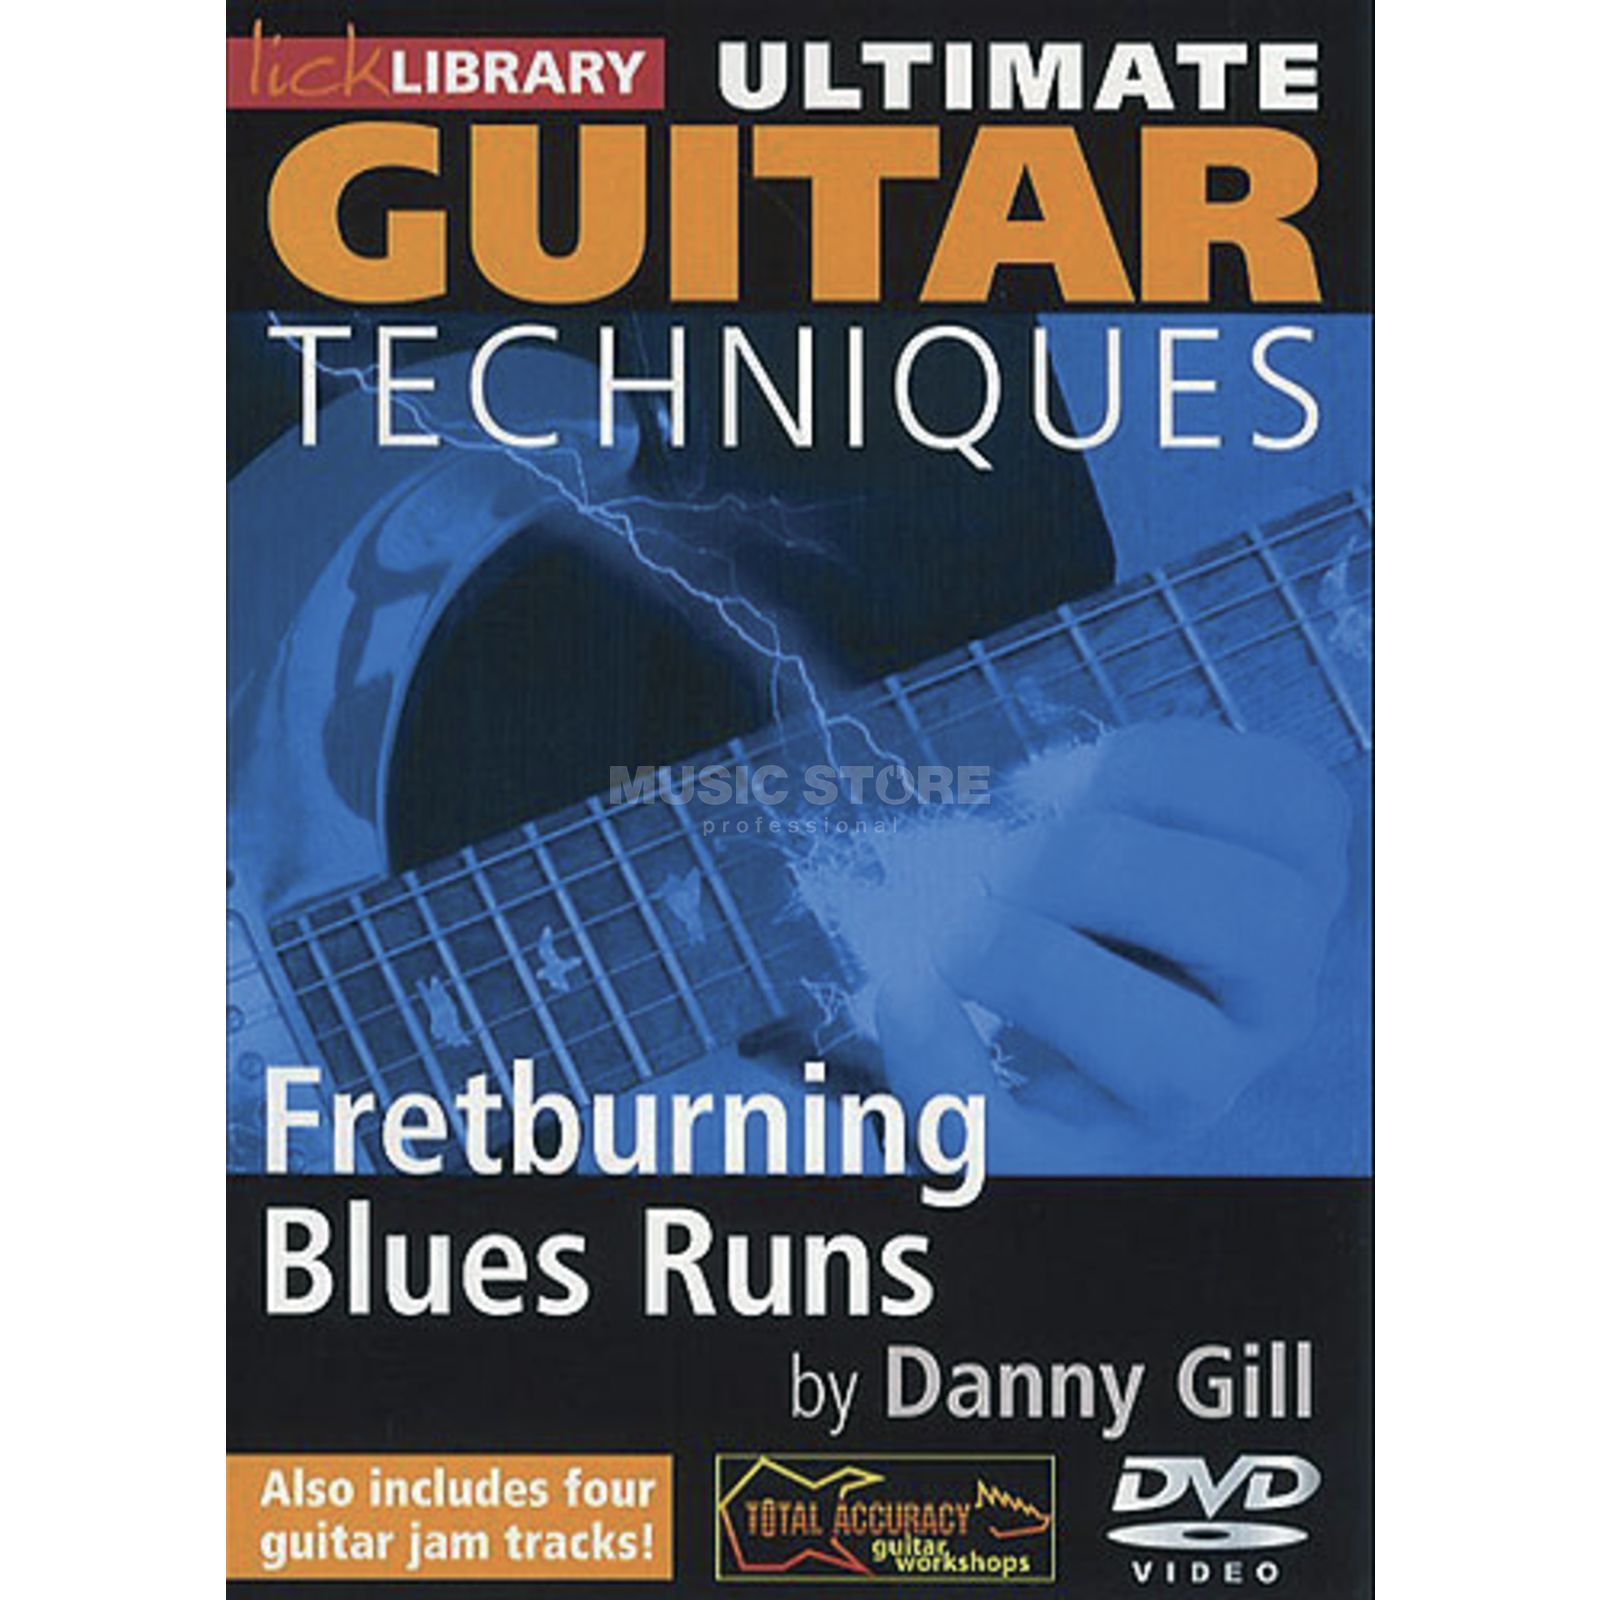 Roadrock International Lick Library: Ultimate Guitar Techniques - Fretburning Blues Runs DVD Product Image